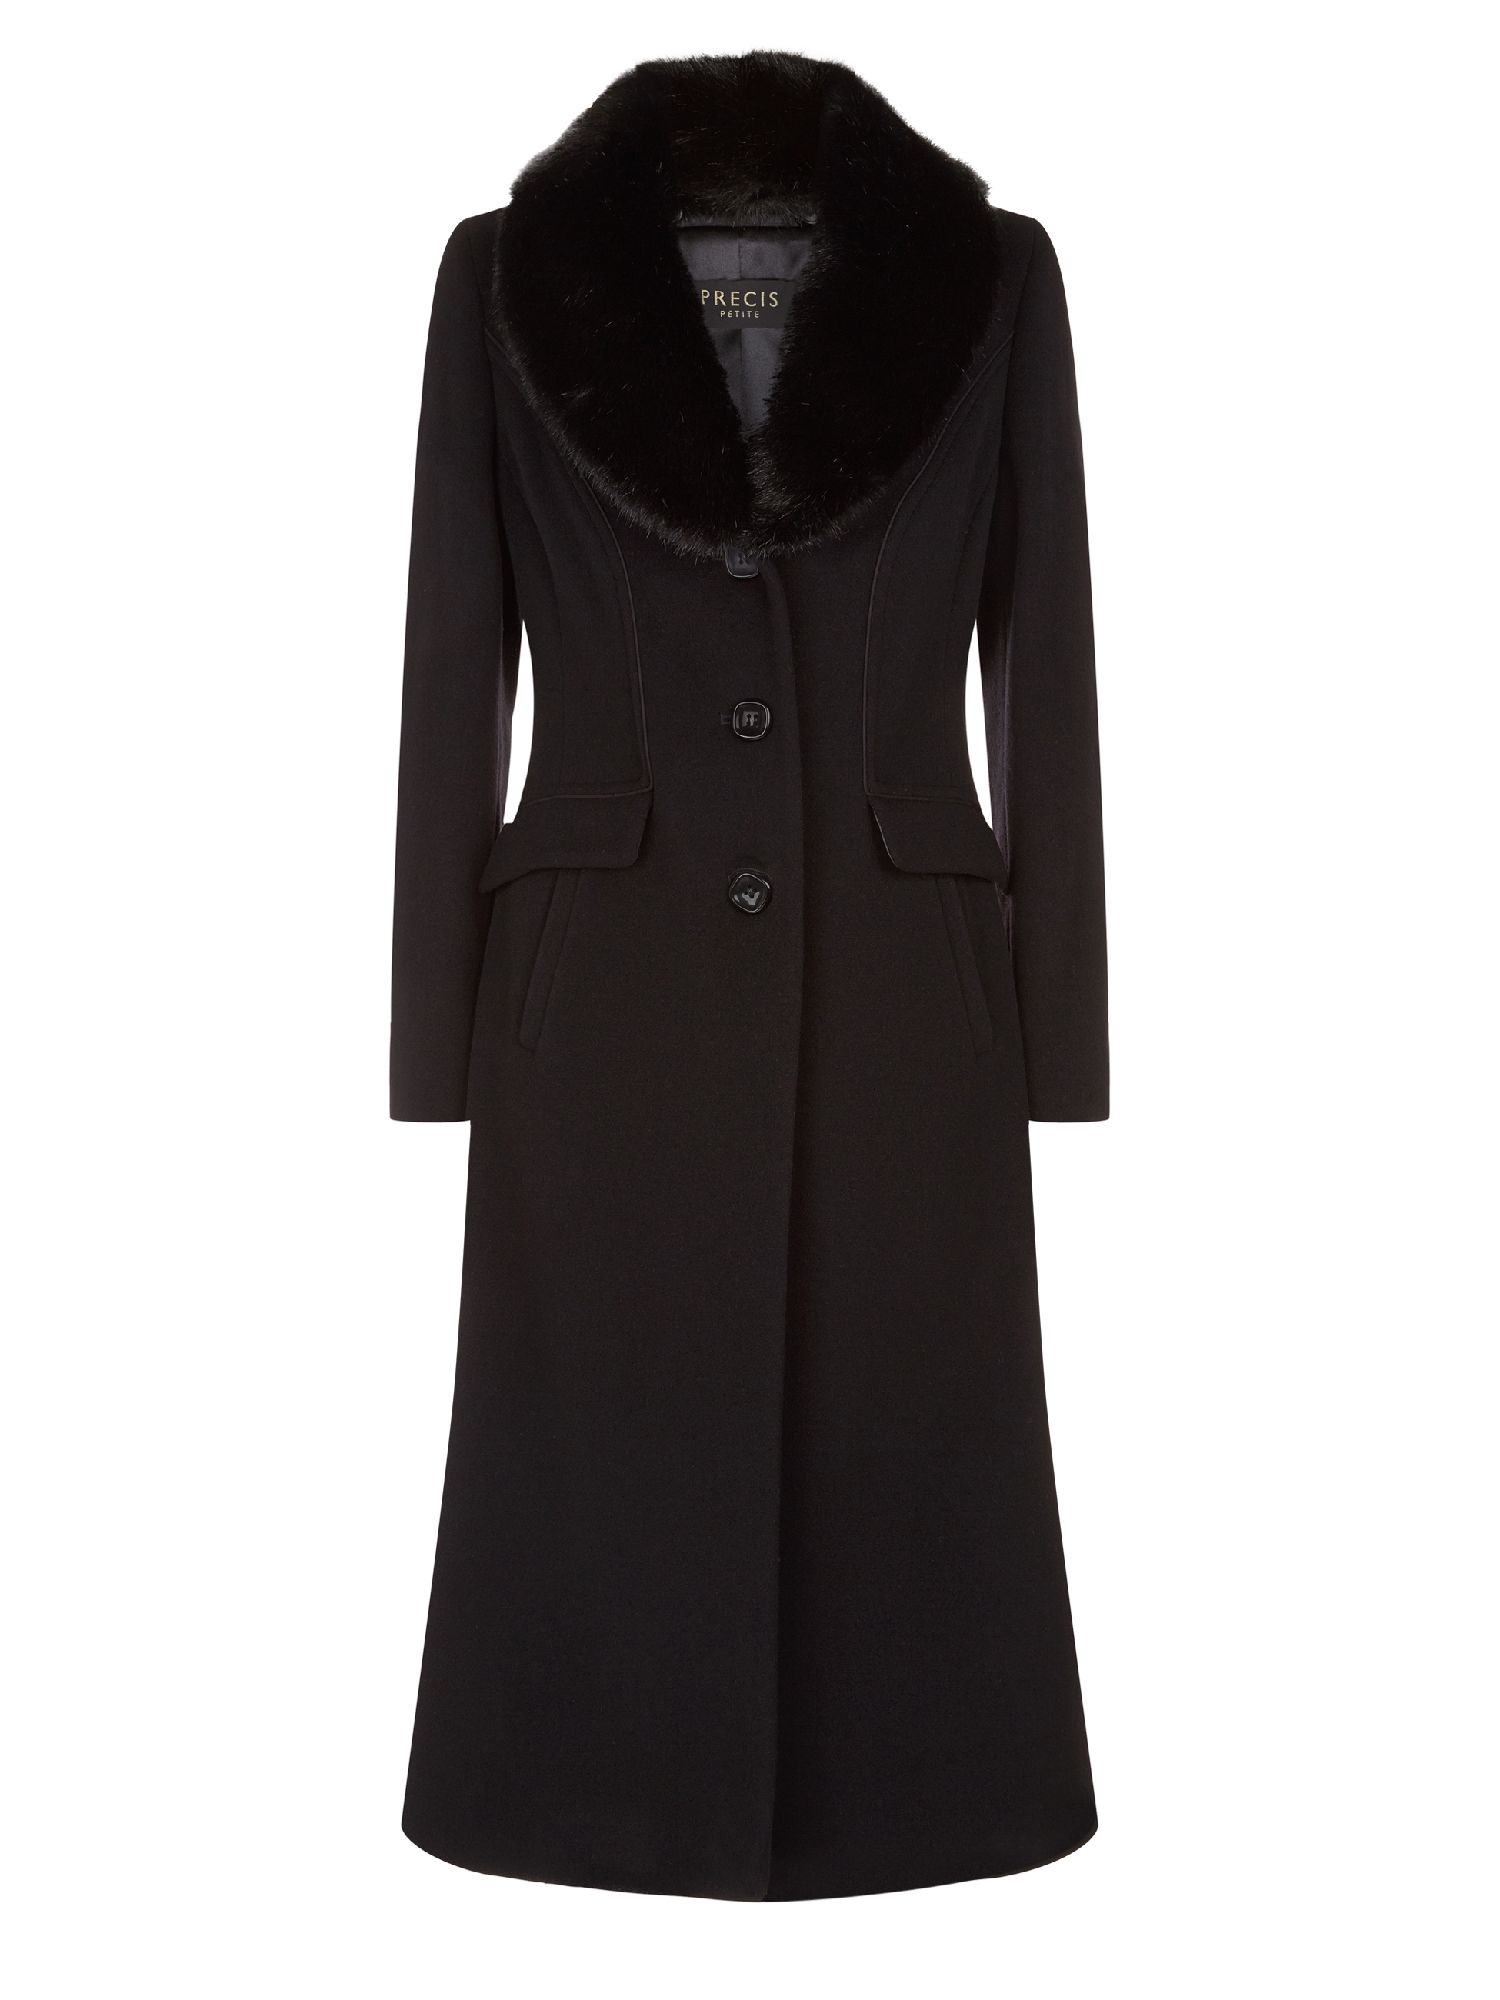 Precis petite Fur Collar Wool Coat in Black | Lyst